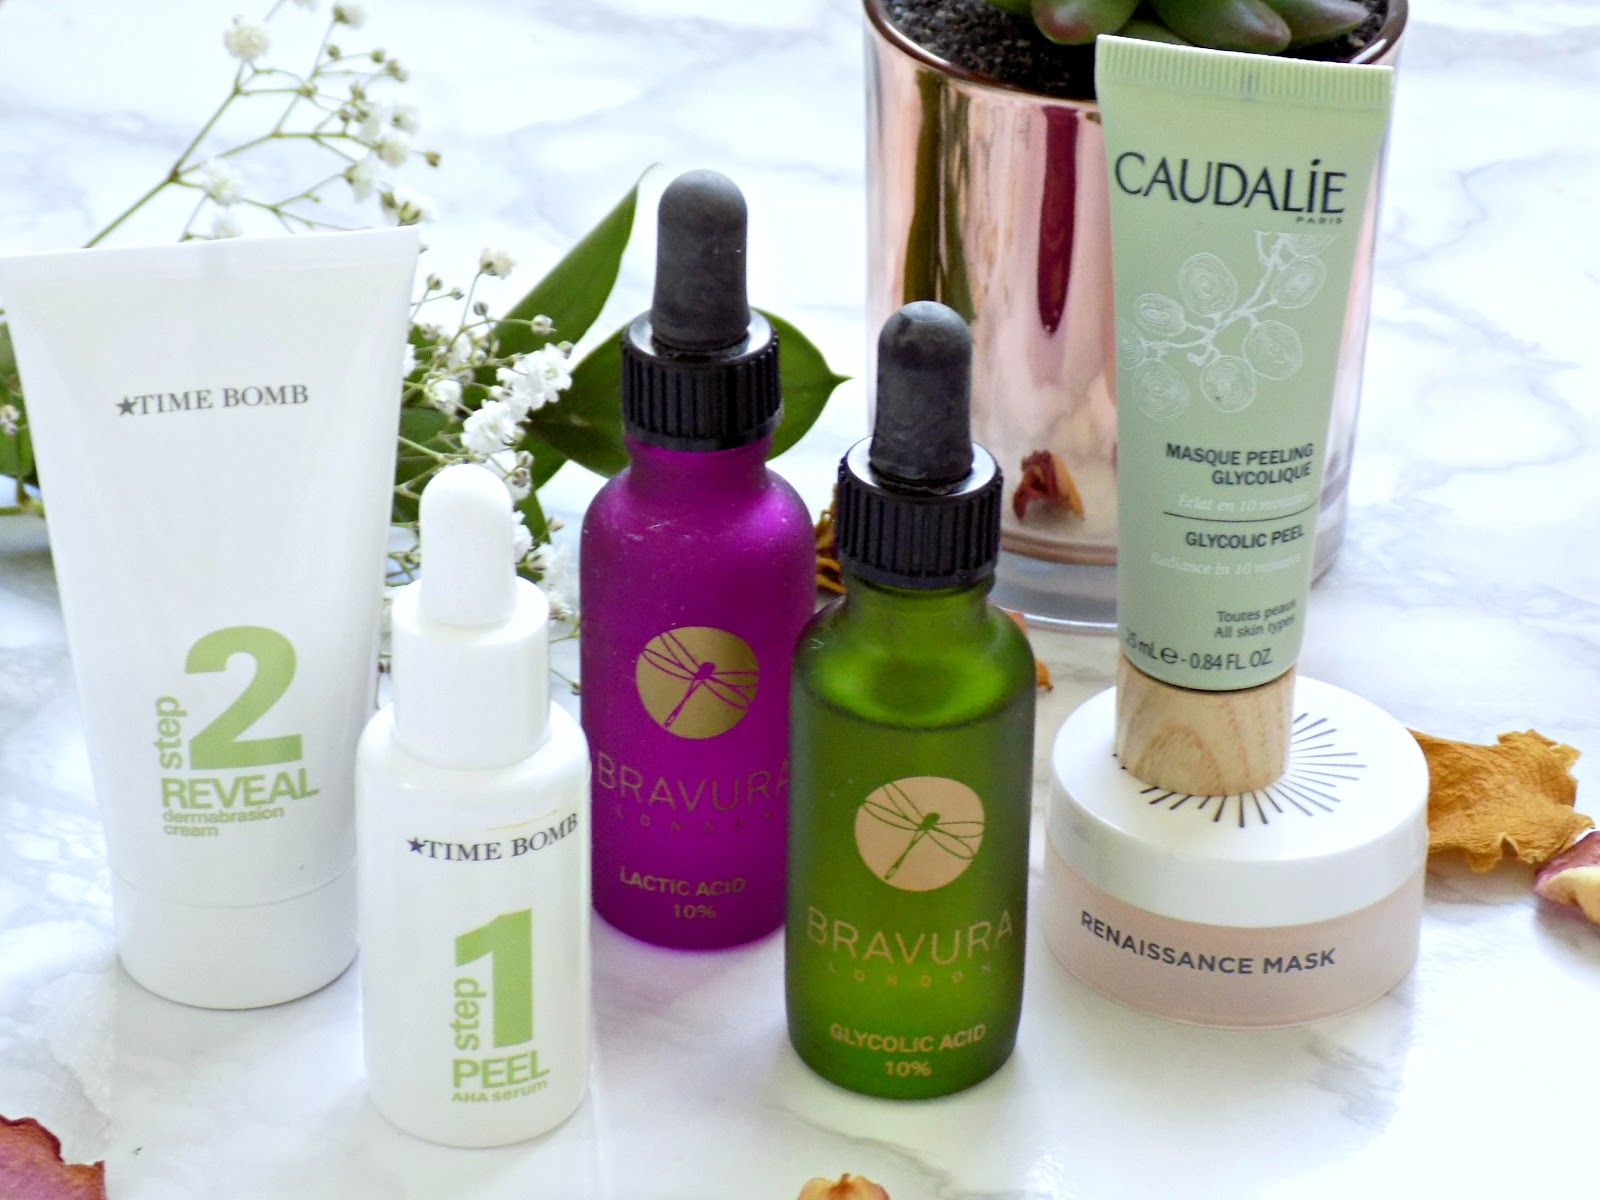 Chemical exfoliators, Bravura Acid Peels, Time Bomb, Caudalie, Oskia